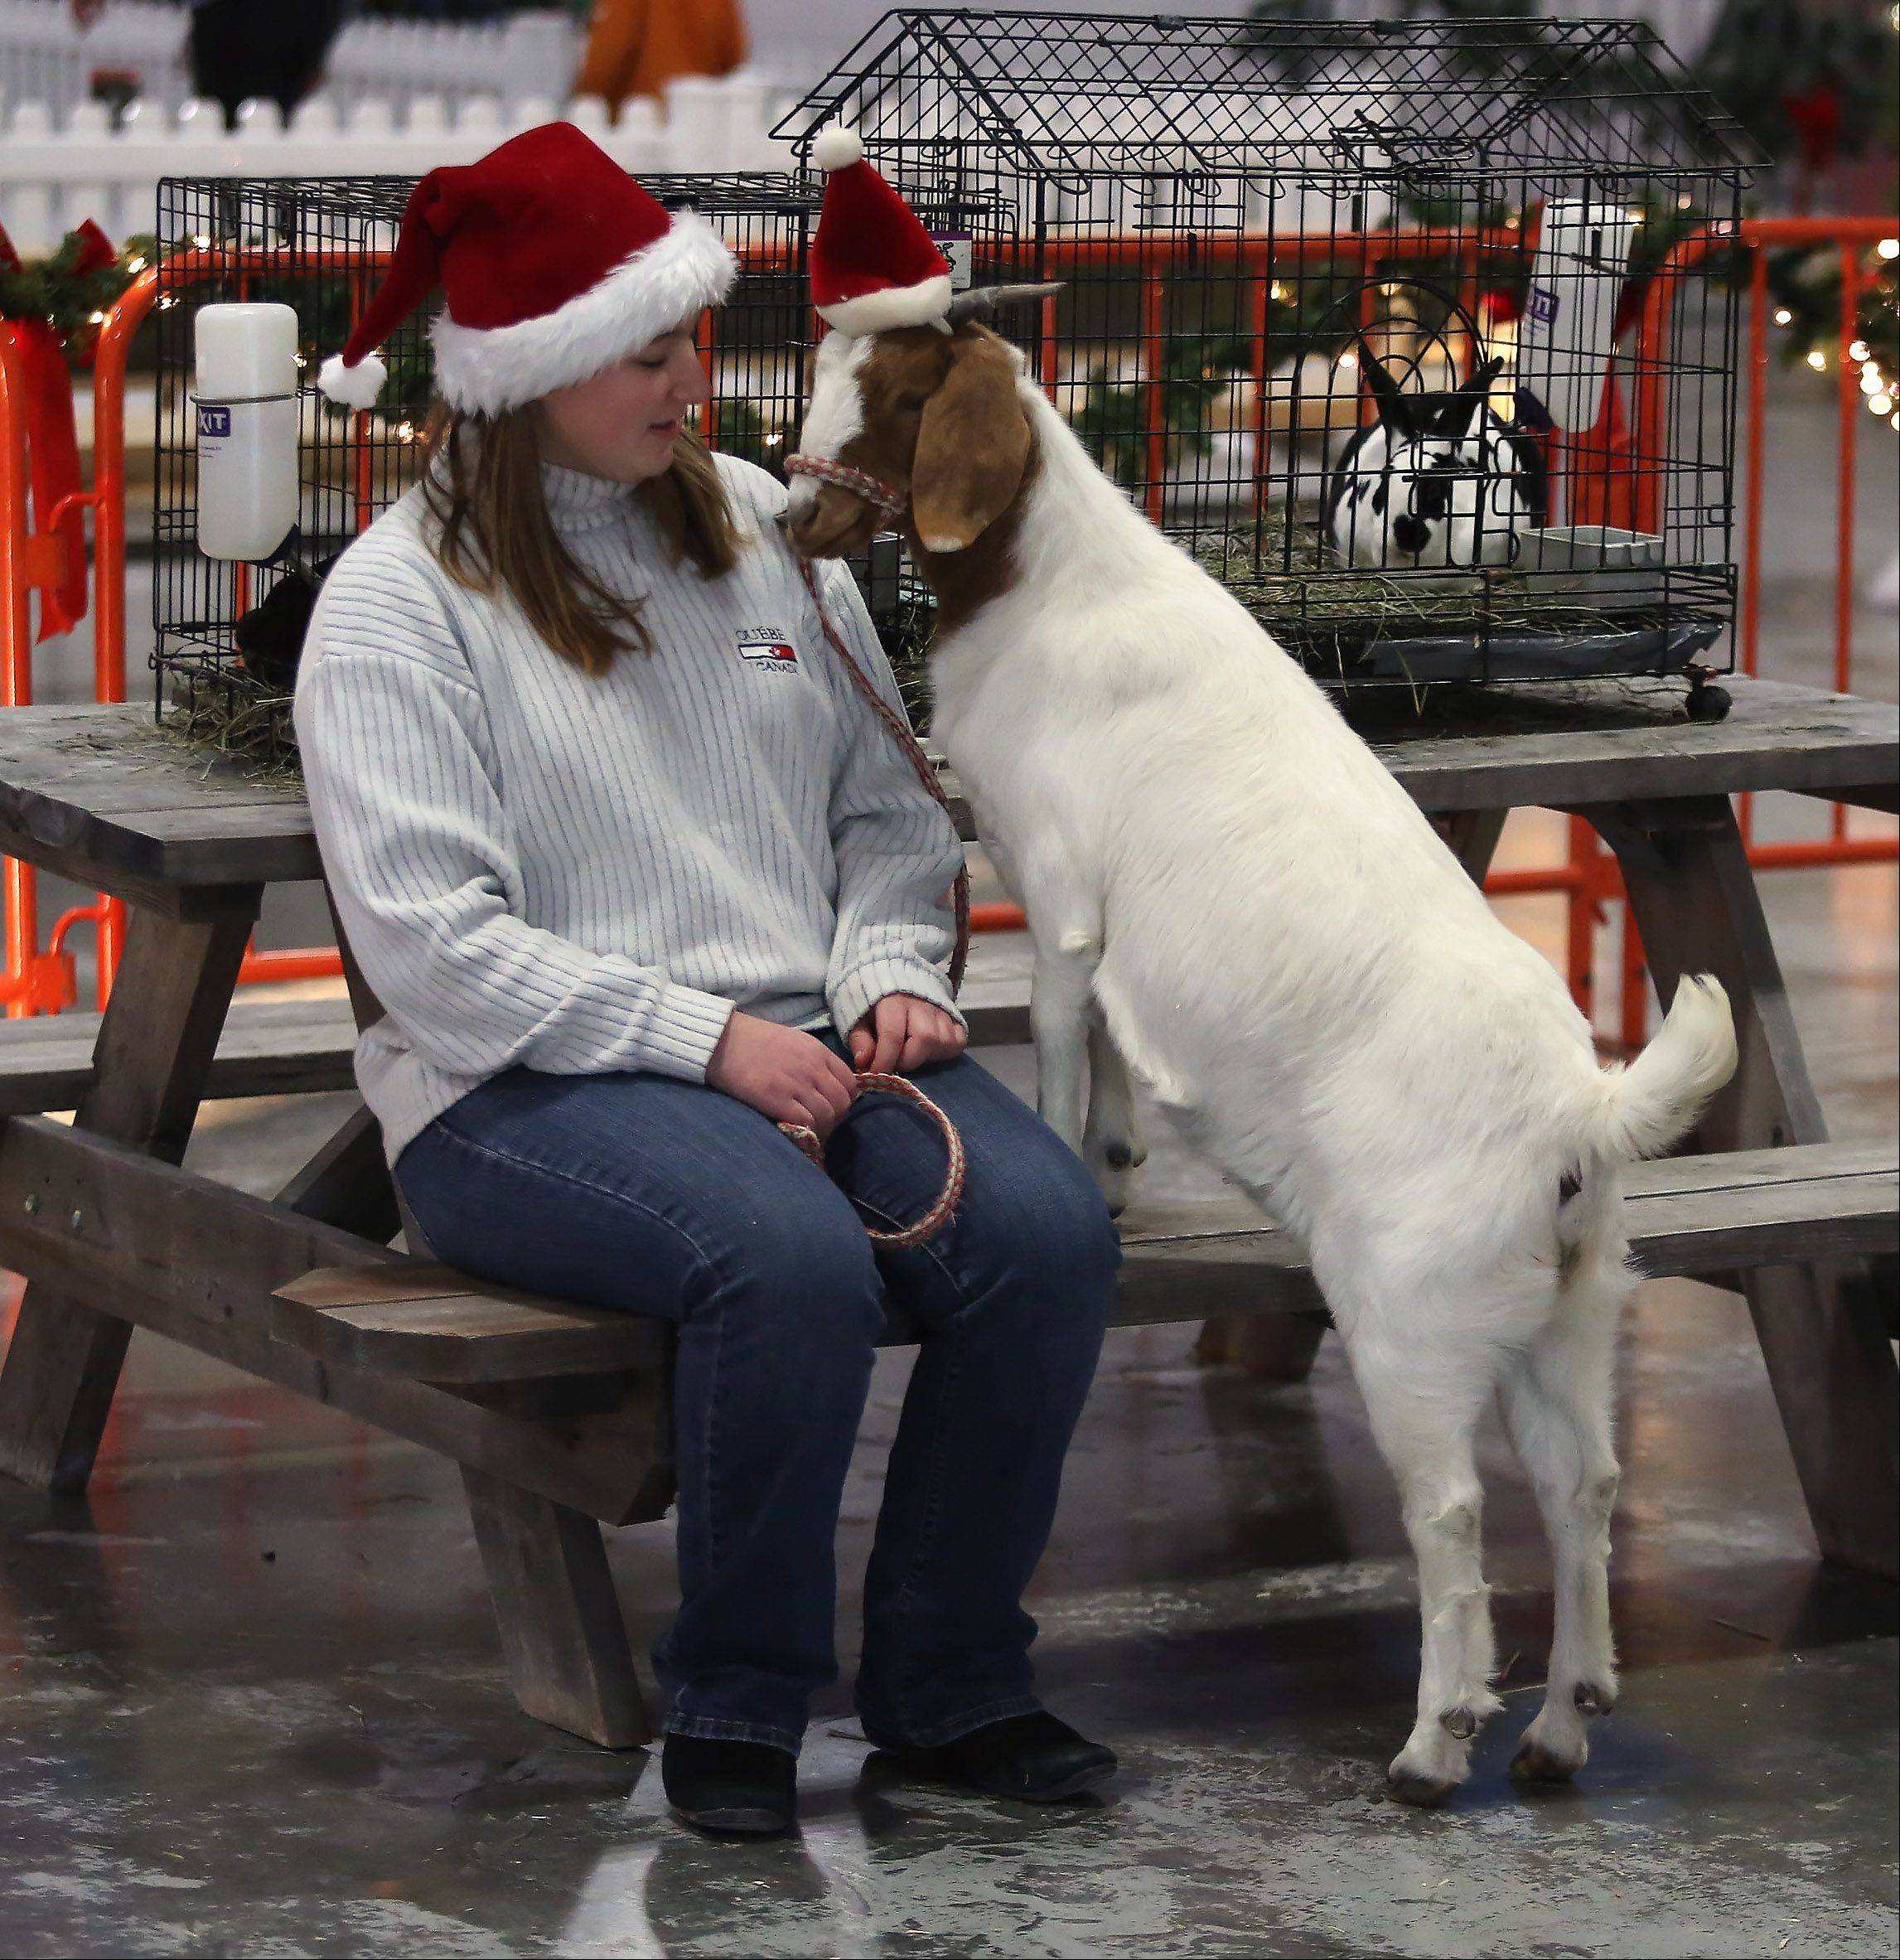 Haley Latona, 15, of Beach Park, wears Santa hats with her Boer goat, Cally, at Santa's Farm during the Holiday Hoedown Monday at the Lake County Fairgrounds in Grayslake. The indoor winter festival included a Magical Midway with carnival rides, Santa's Farm, and holiday crafts.